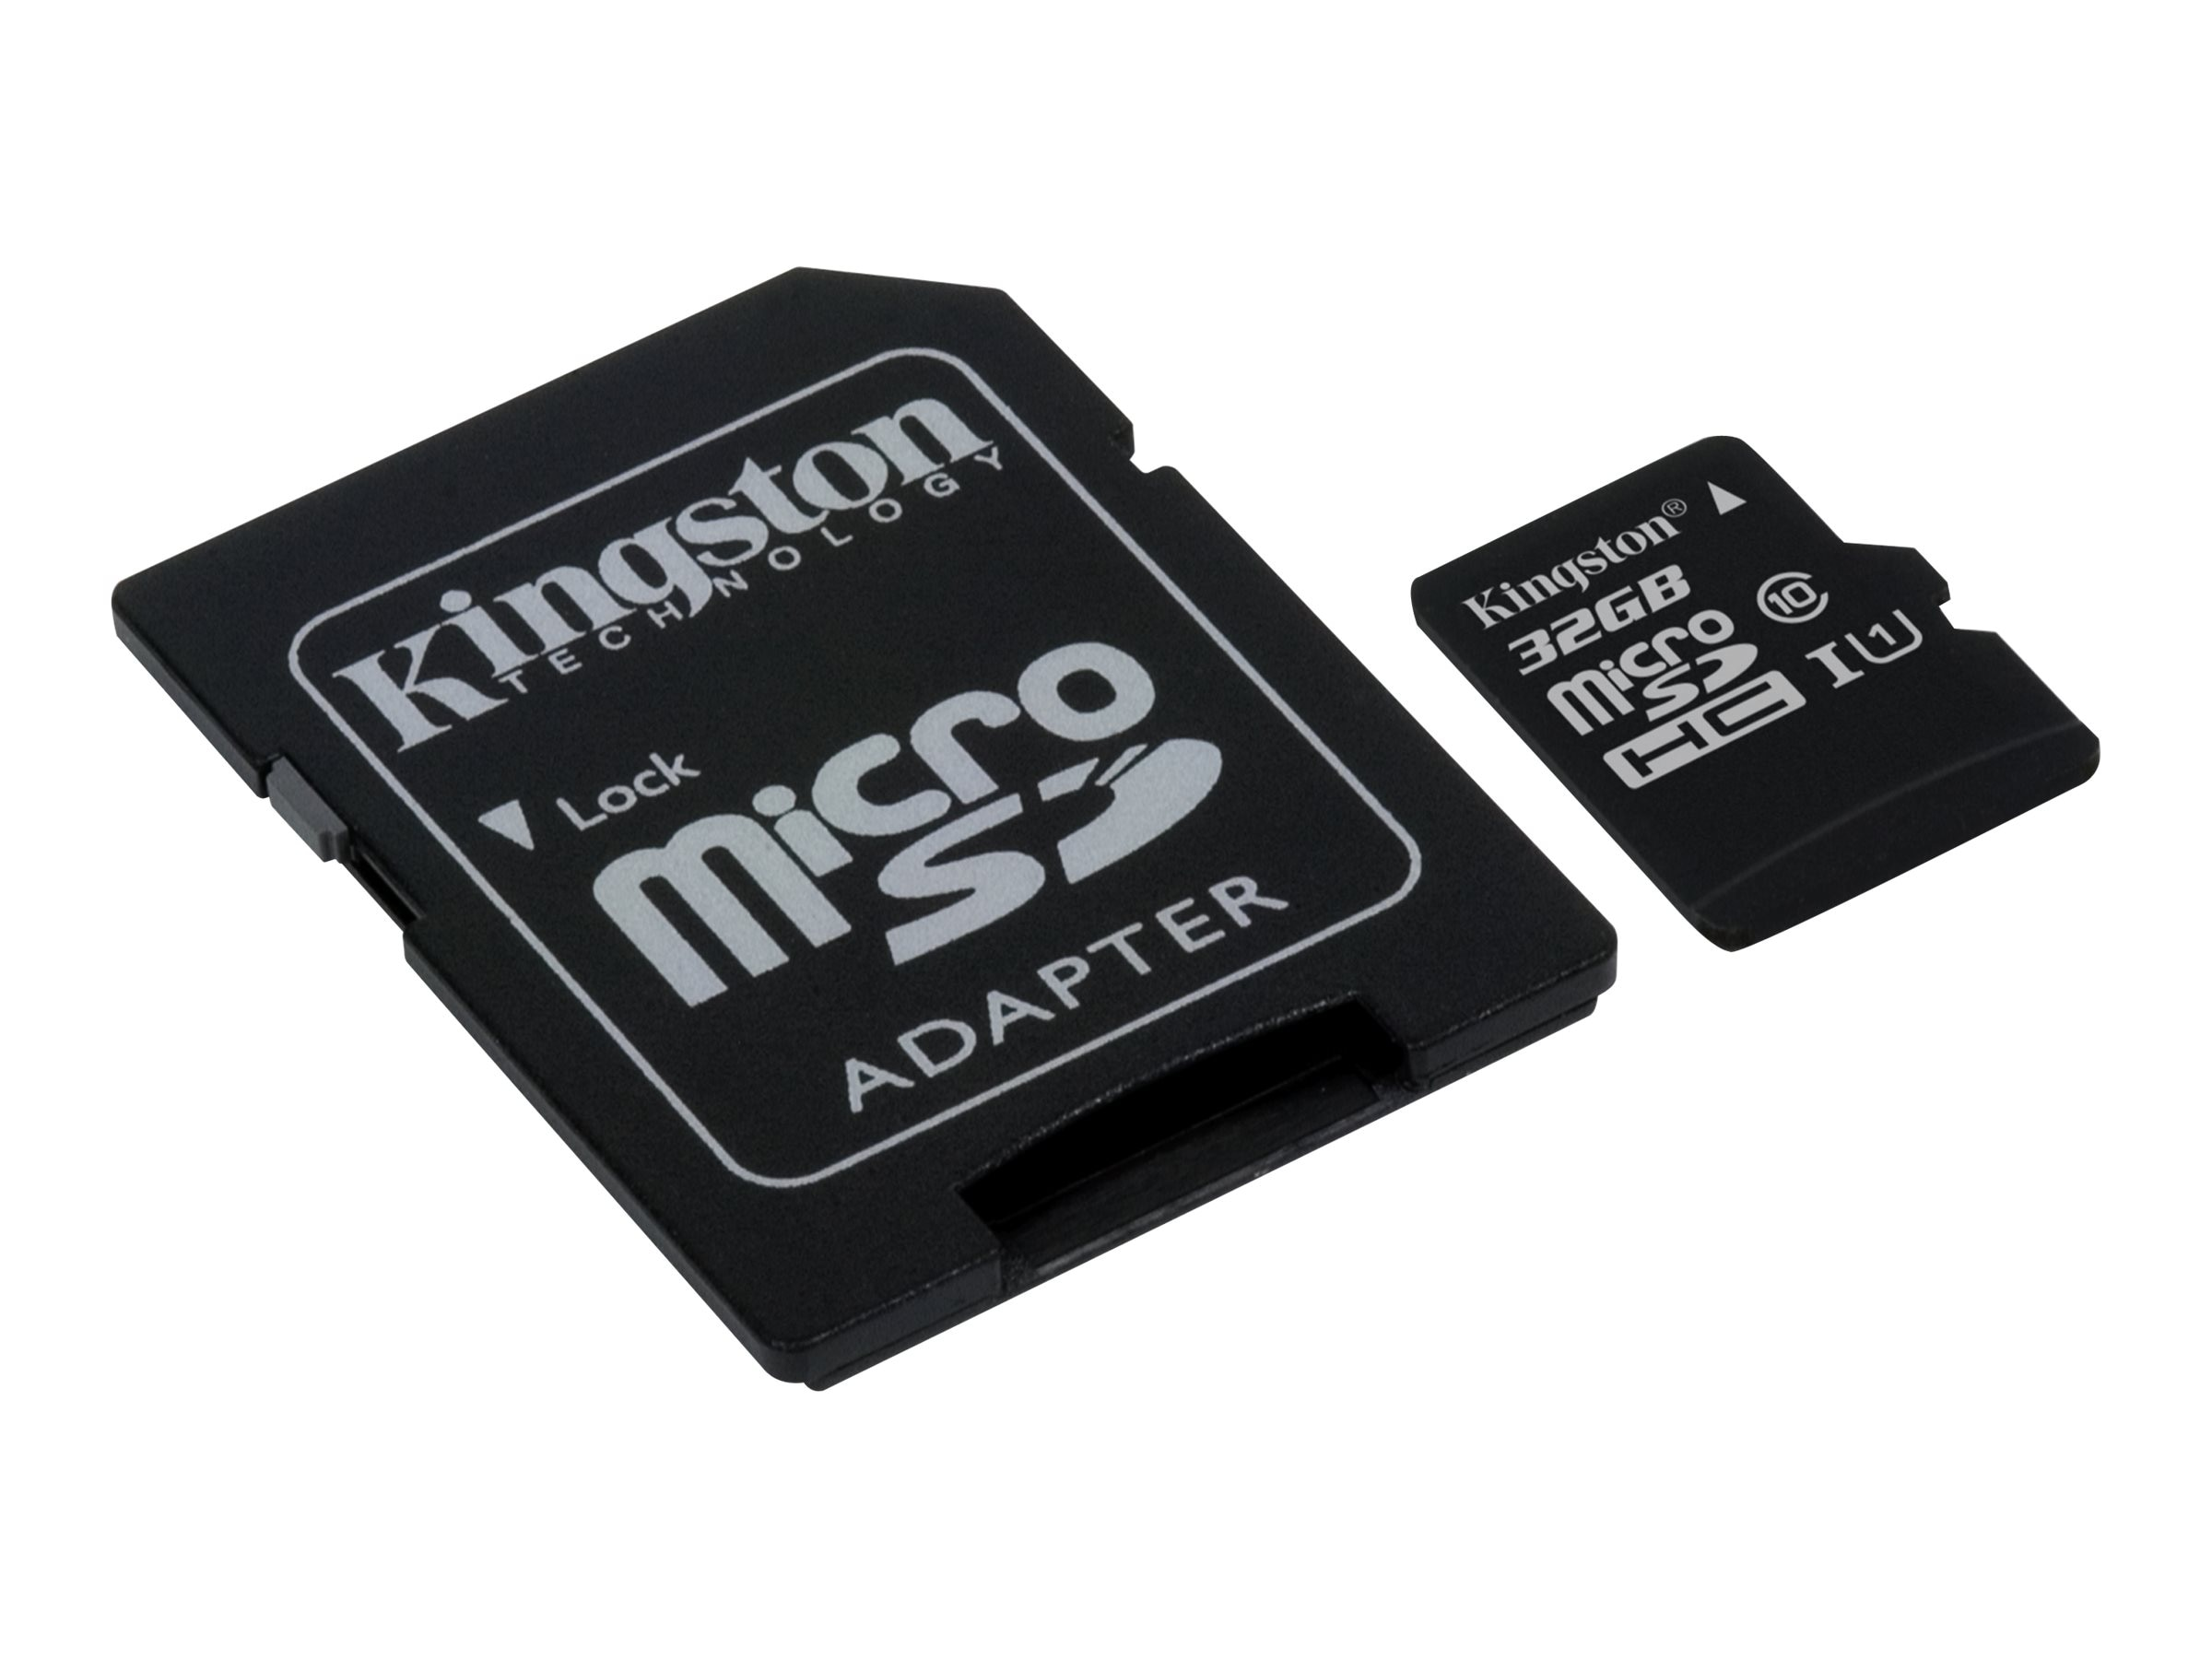 Kingston 32GB UHS-I microSDHC Flash Memory Card with SD Adapter, Class 10, SDC10G2/32GB